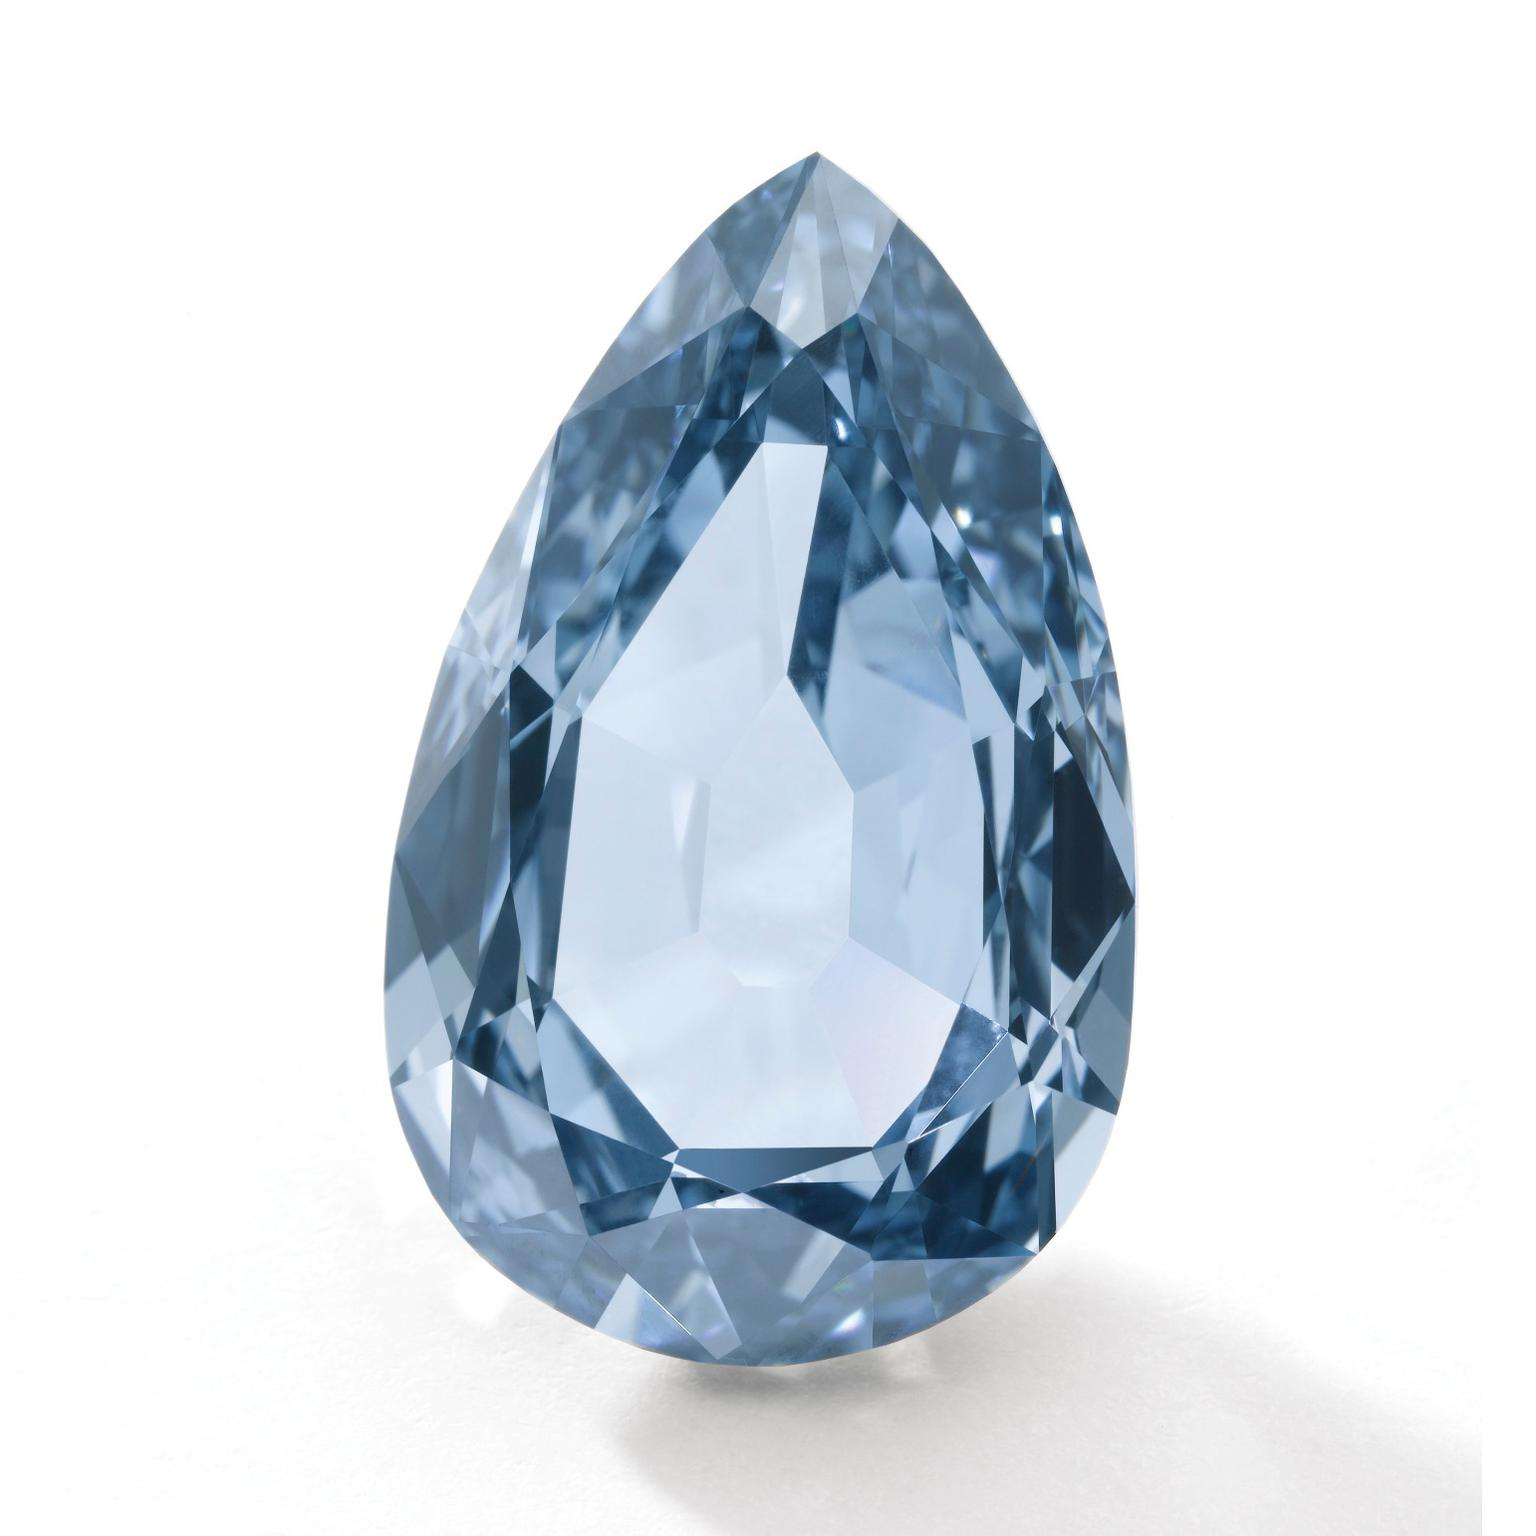 Sotheby's Fancy Vivid blue diamond